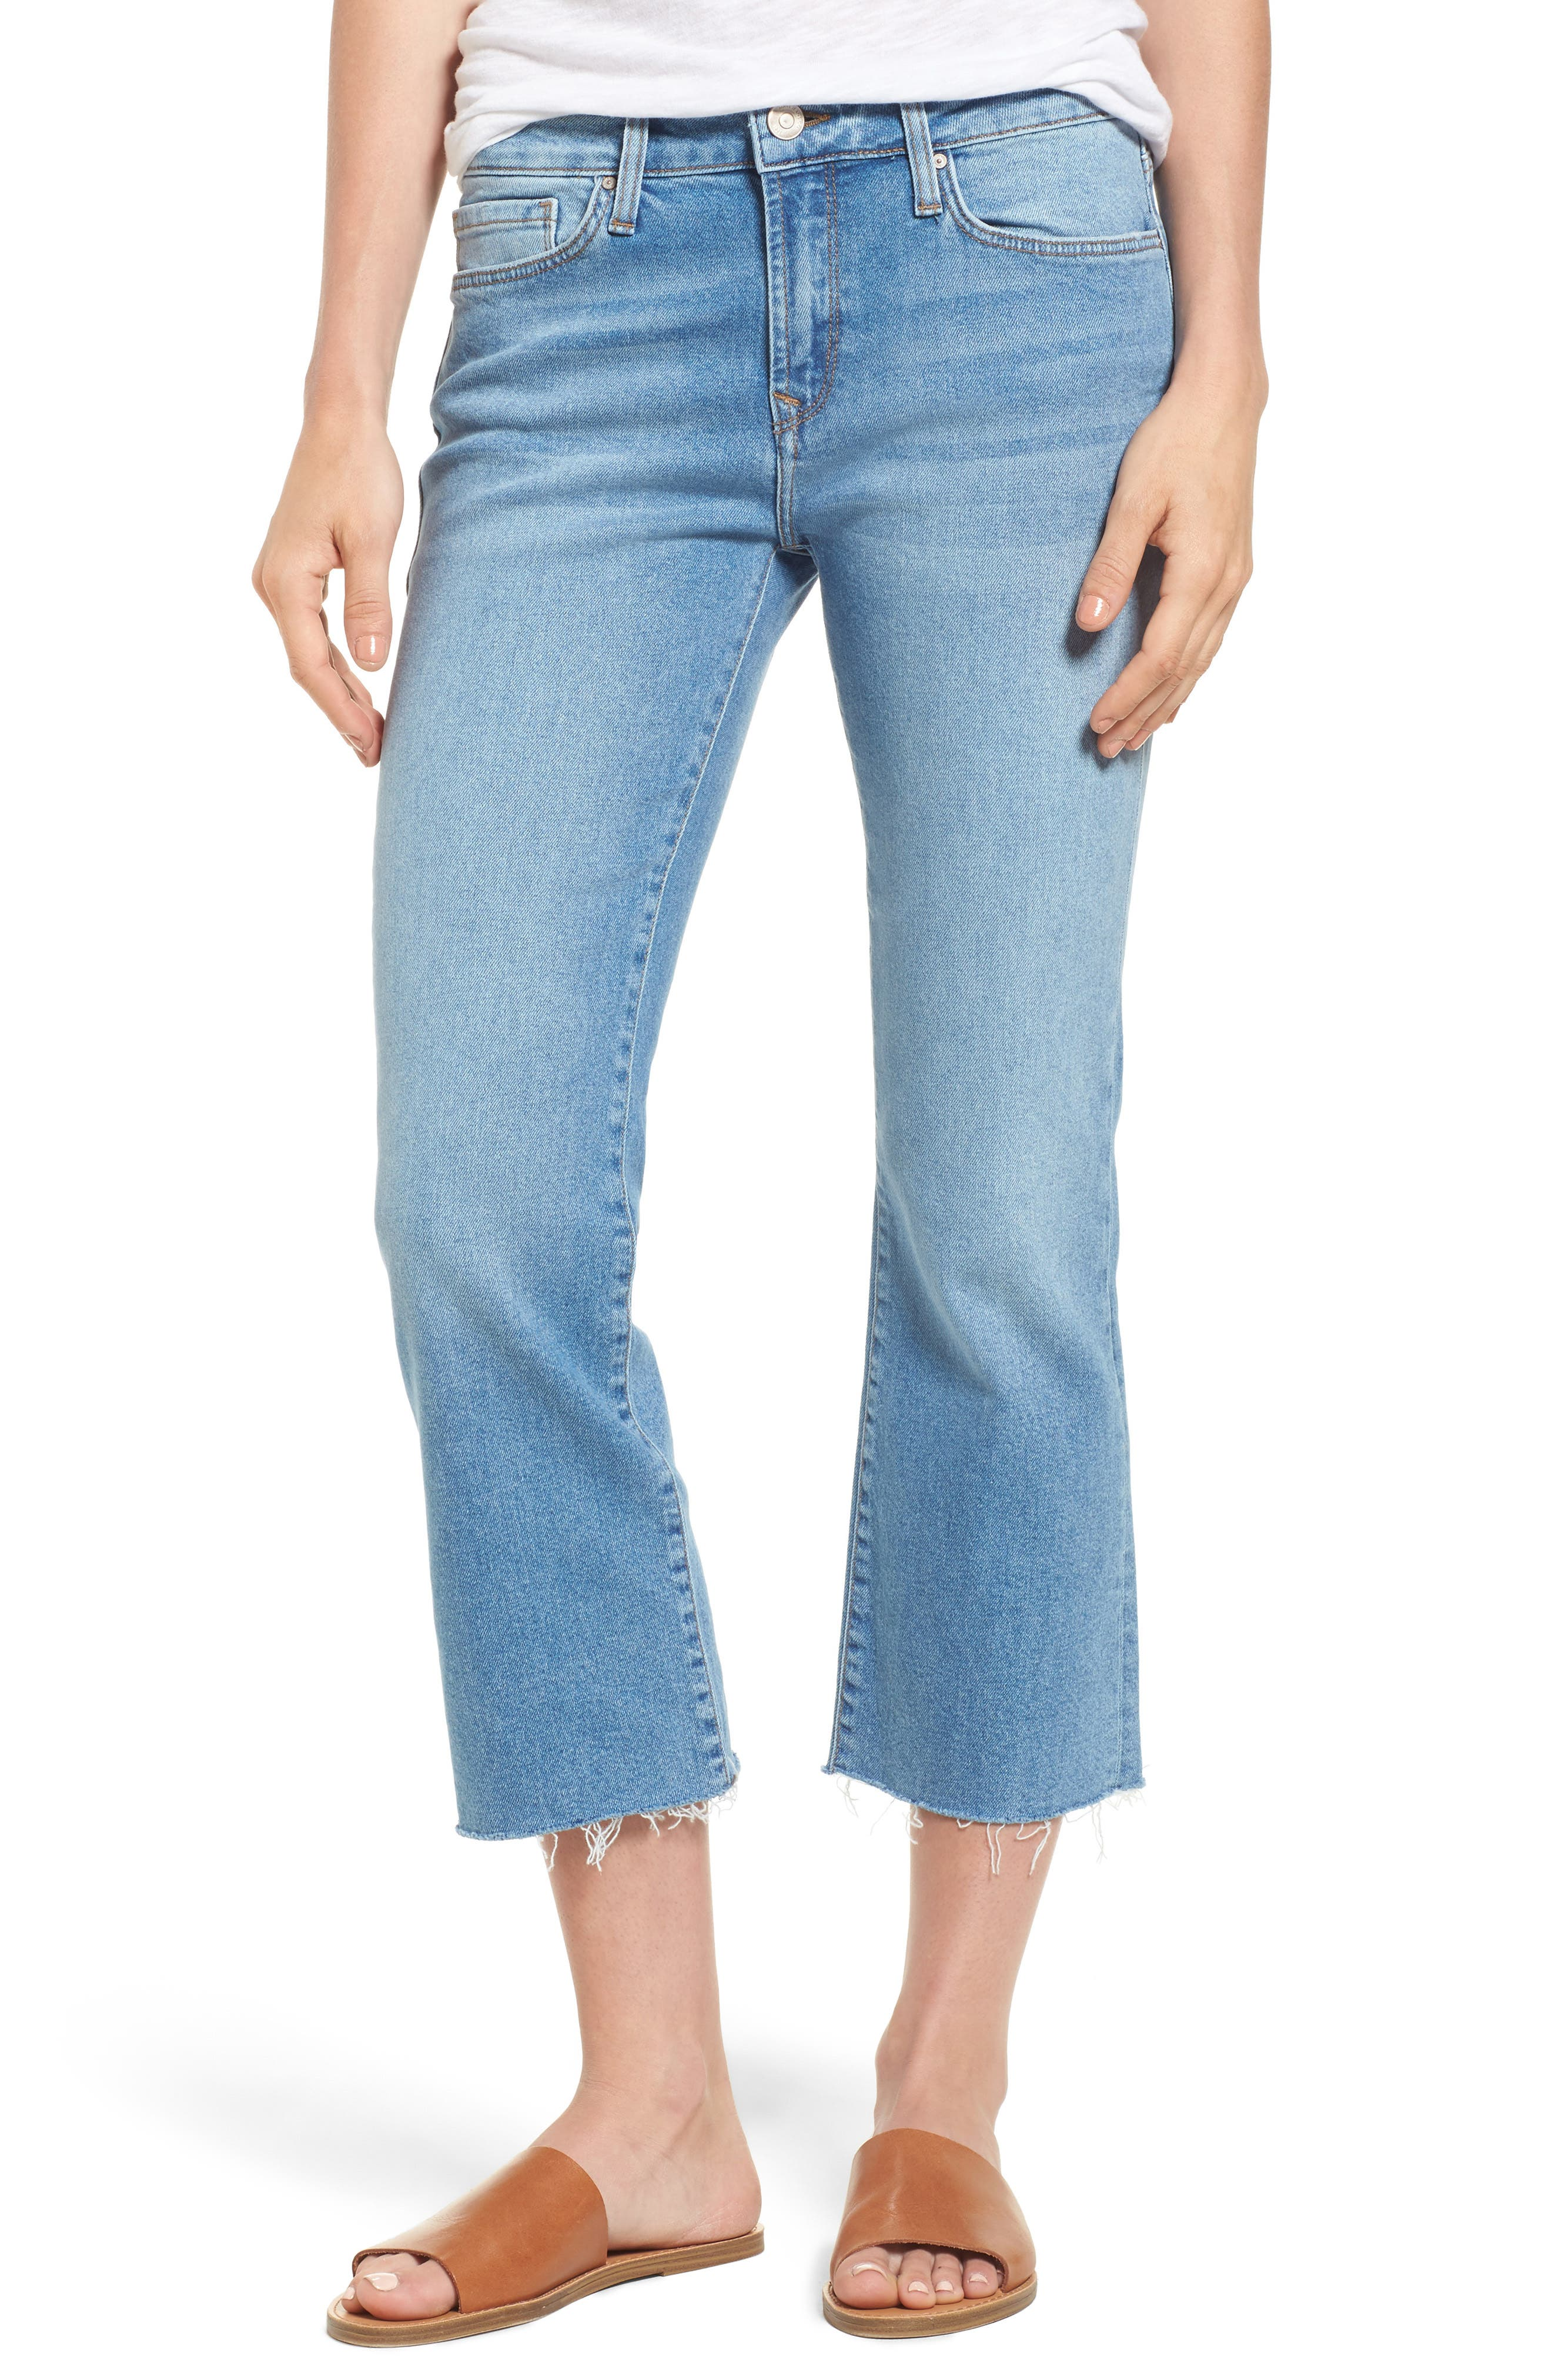 Anika Stretch Crop Jeans,                             Main thumbnail 1, color,                             Light Used Retro